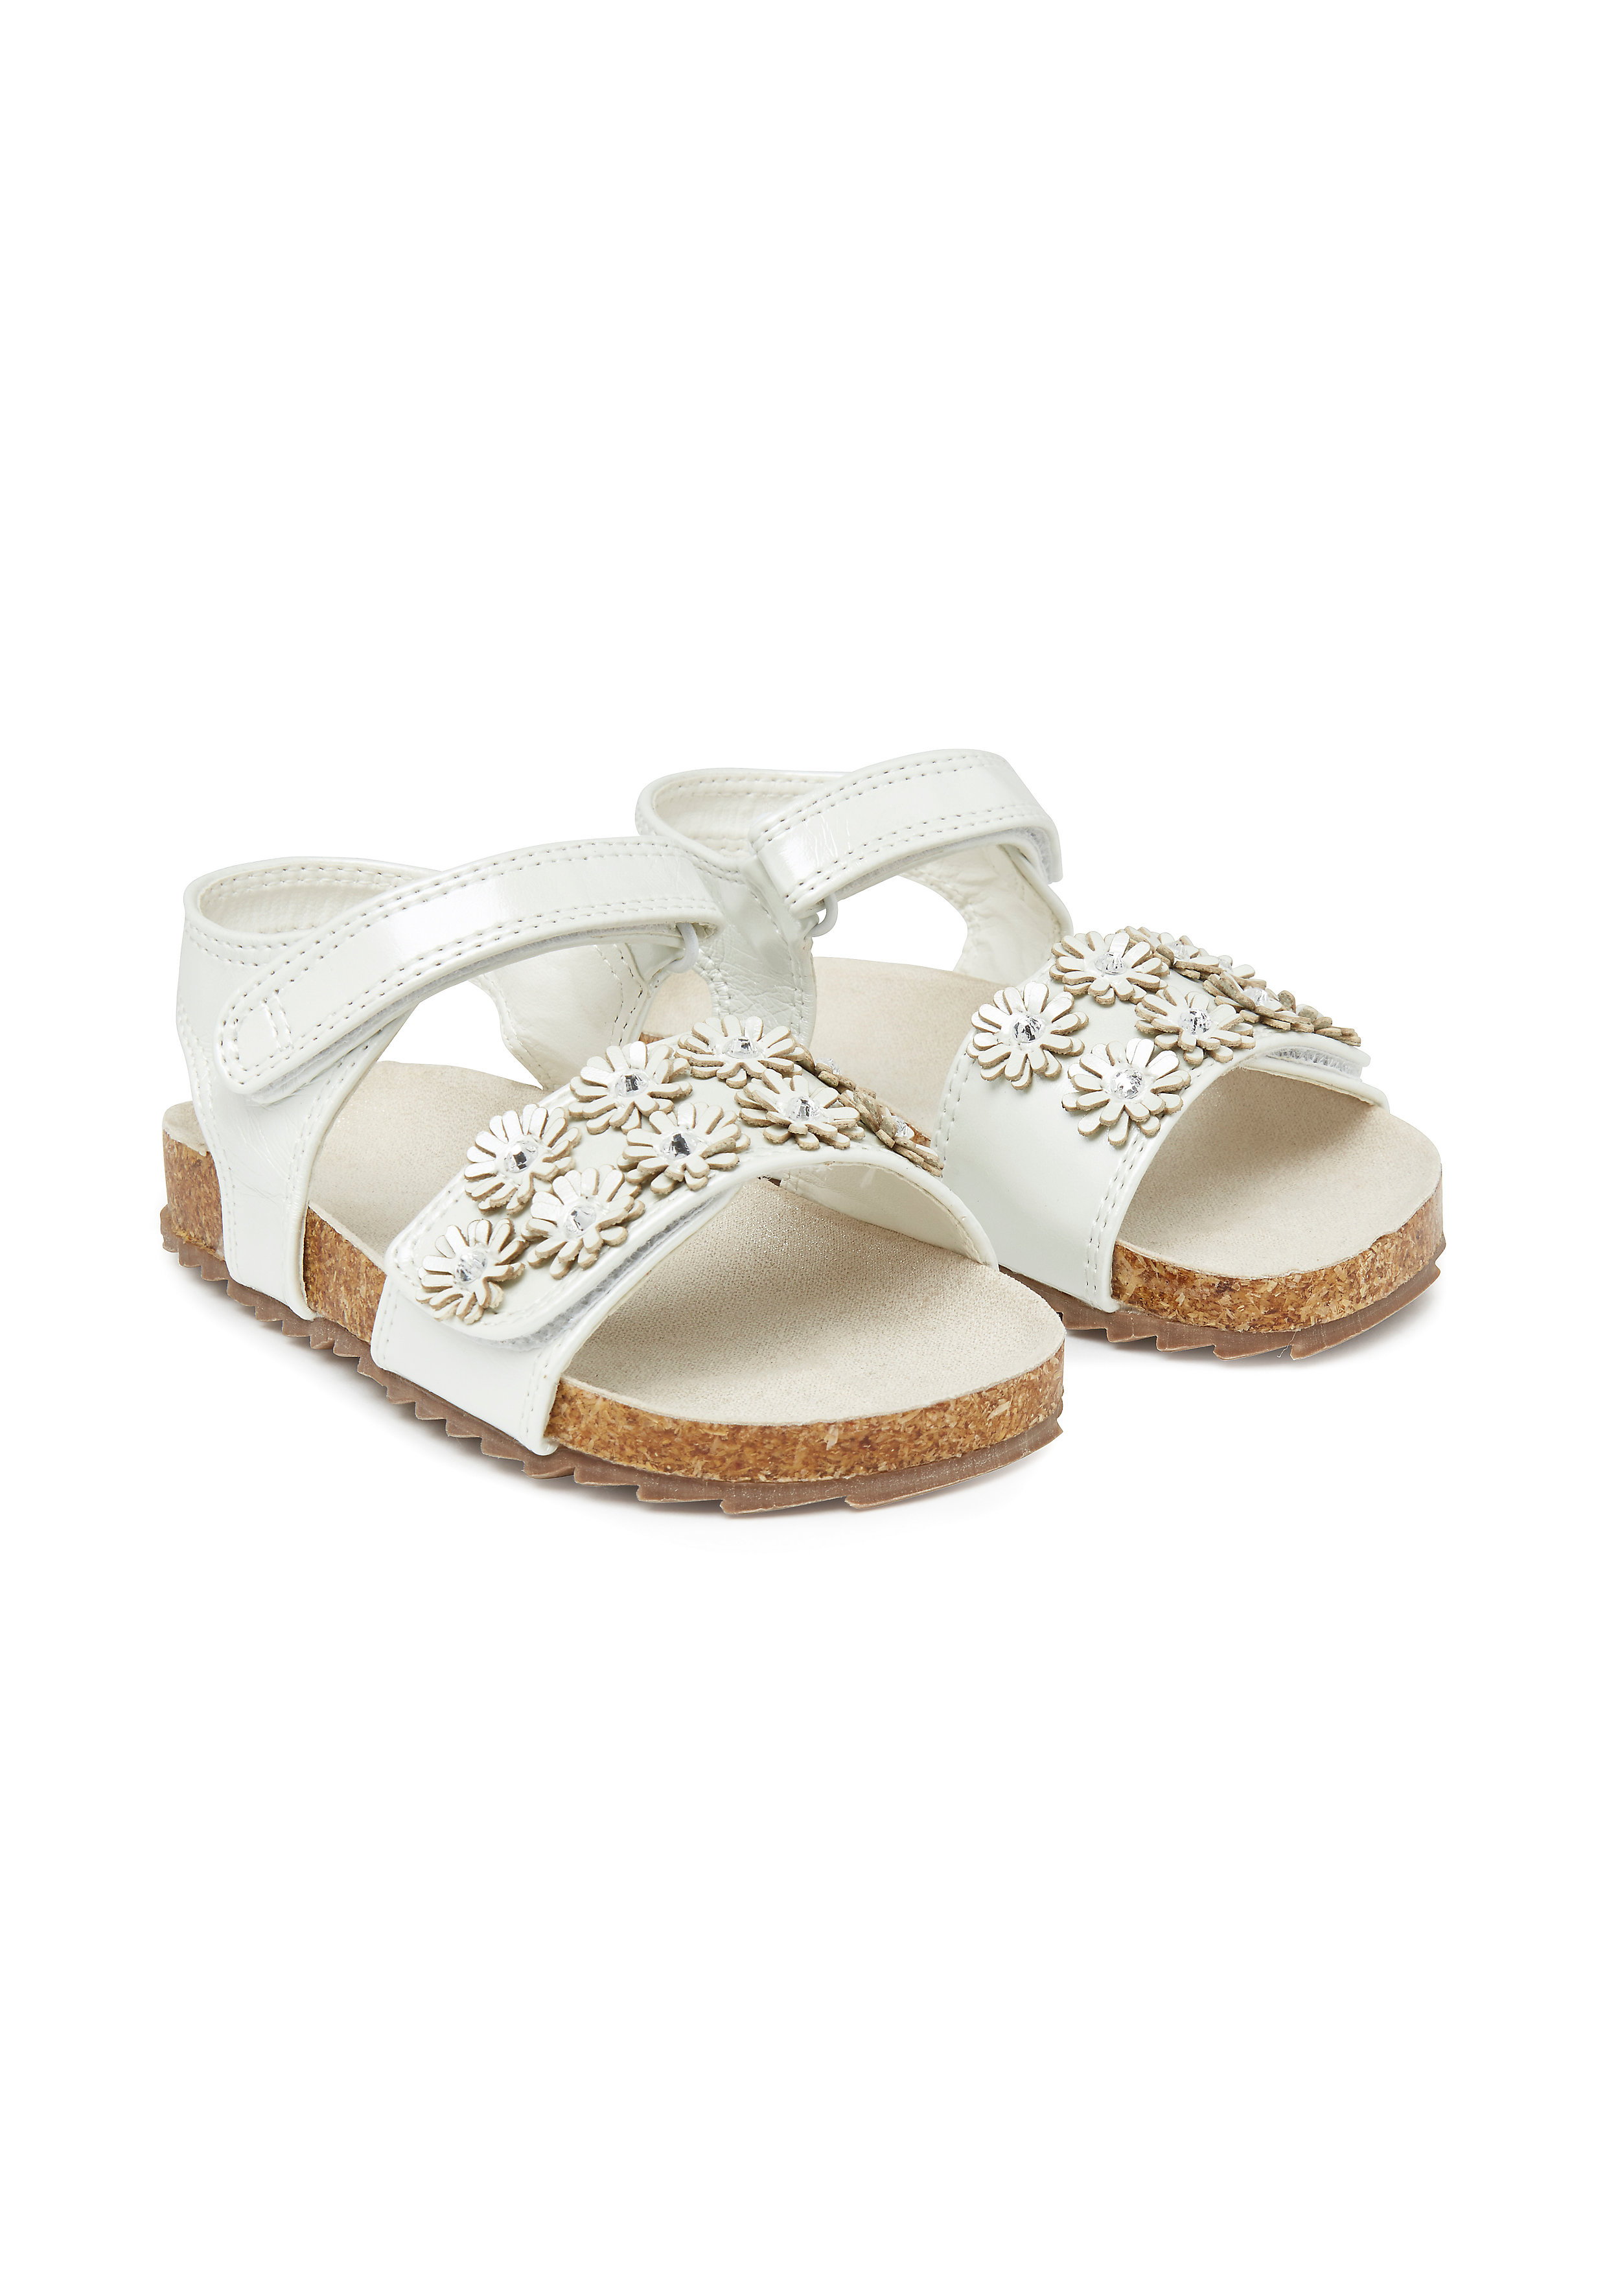 Mothercare   Girls Flower Footbed Sandals - Cream